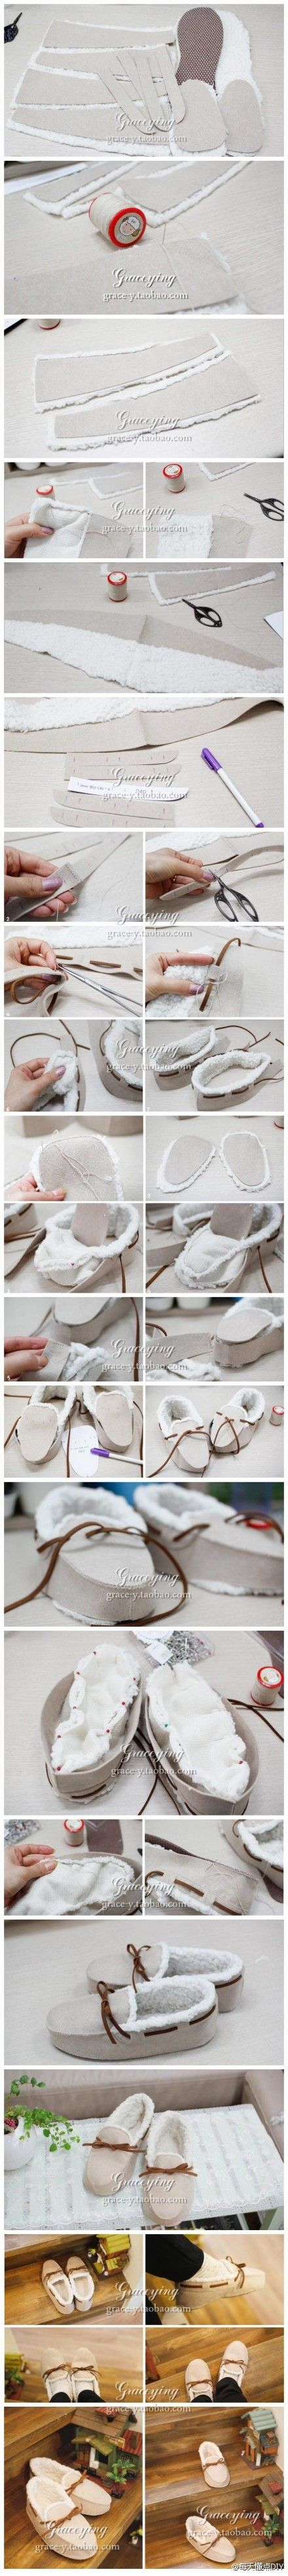 DIY Fuzzy Mocs by duitang #Slippers #Moccasins #duitang